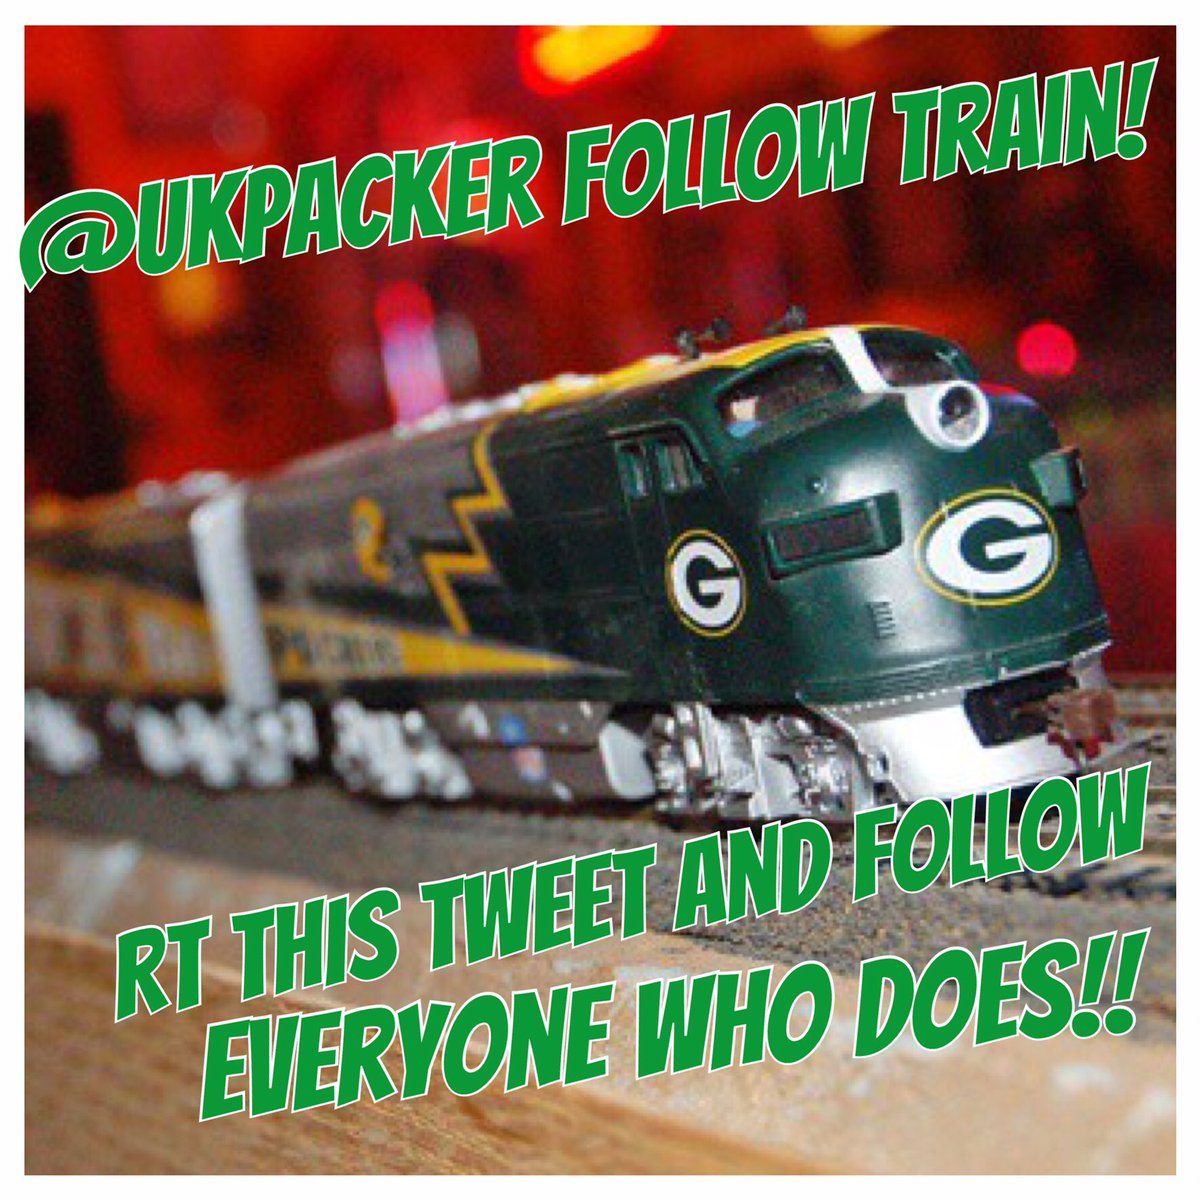 Thanks for spending the game with us! We have been @SteDiddyNFL and @RyanPeacockNFL! Now let's get that post game #FollowTrain going! RT and follow everyone who does!! #GoPackGo  #GBvsDAL <br>http://pic.twitter.com/t2IeYyYIoU